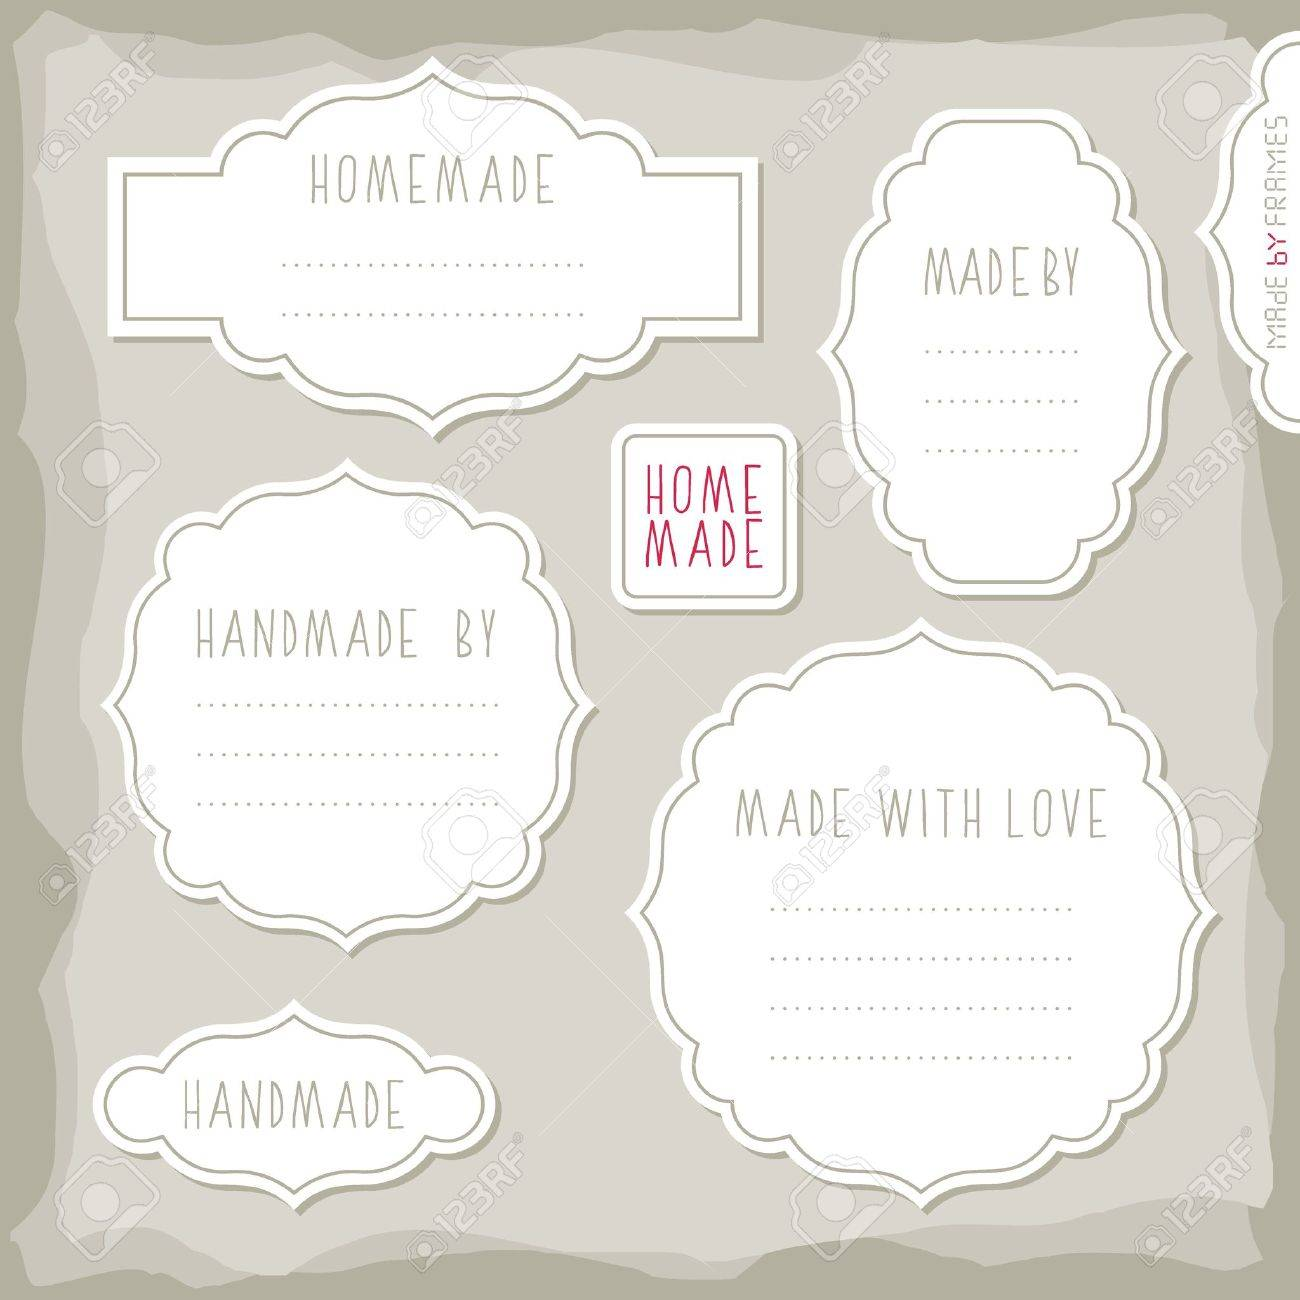 homemade made with love simple white vintage labels with border